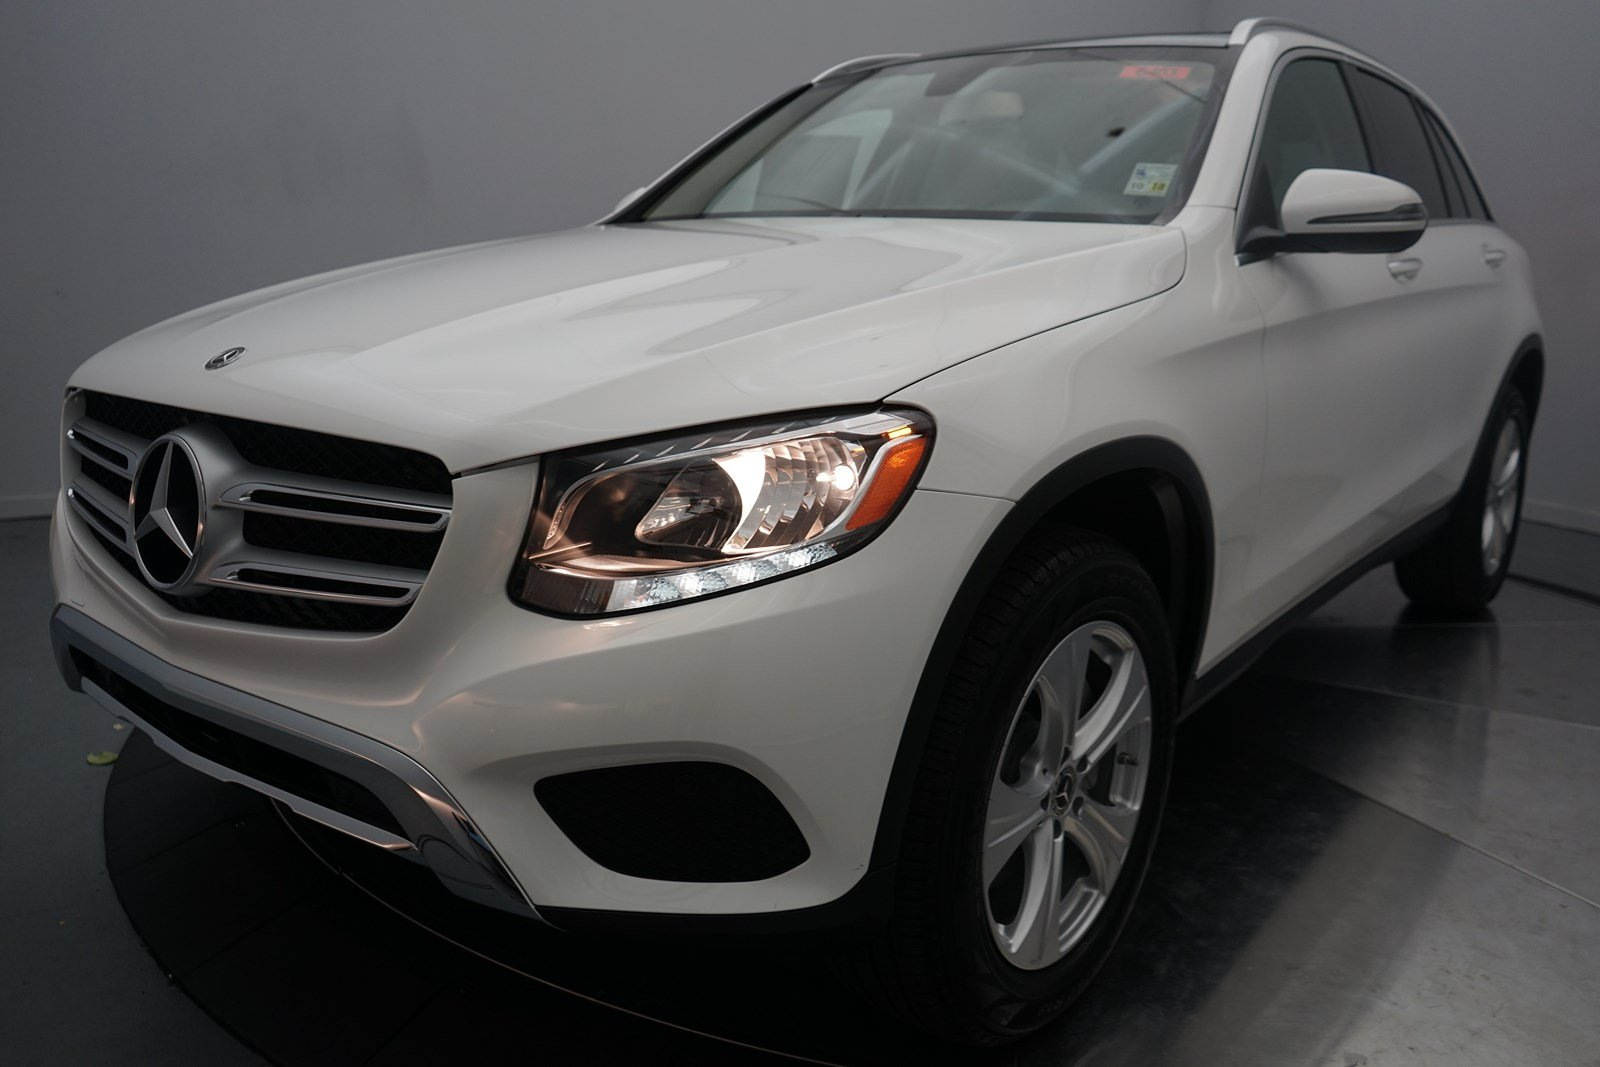 New 2018 mercedes benz glc glc 300 suv in shreveport 6403 for Mercedes benz glc 300 accessories